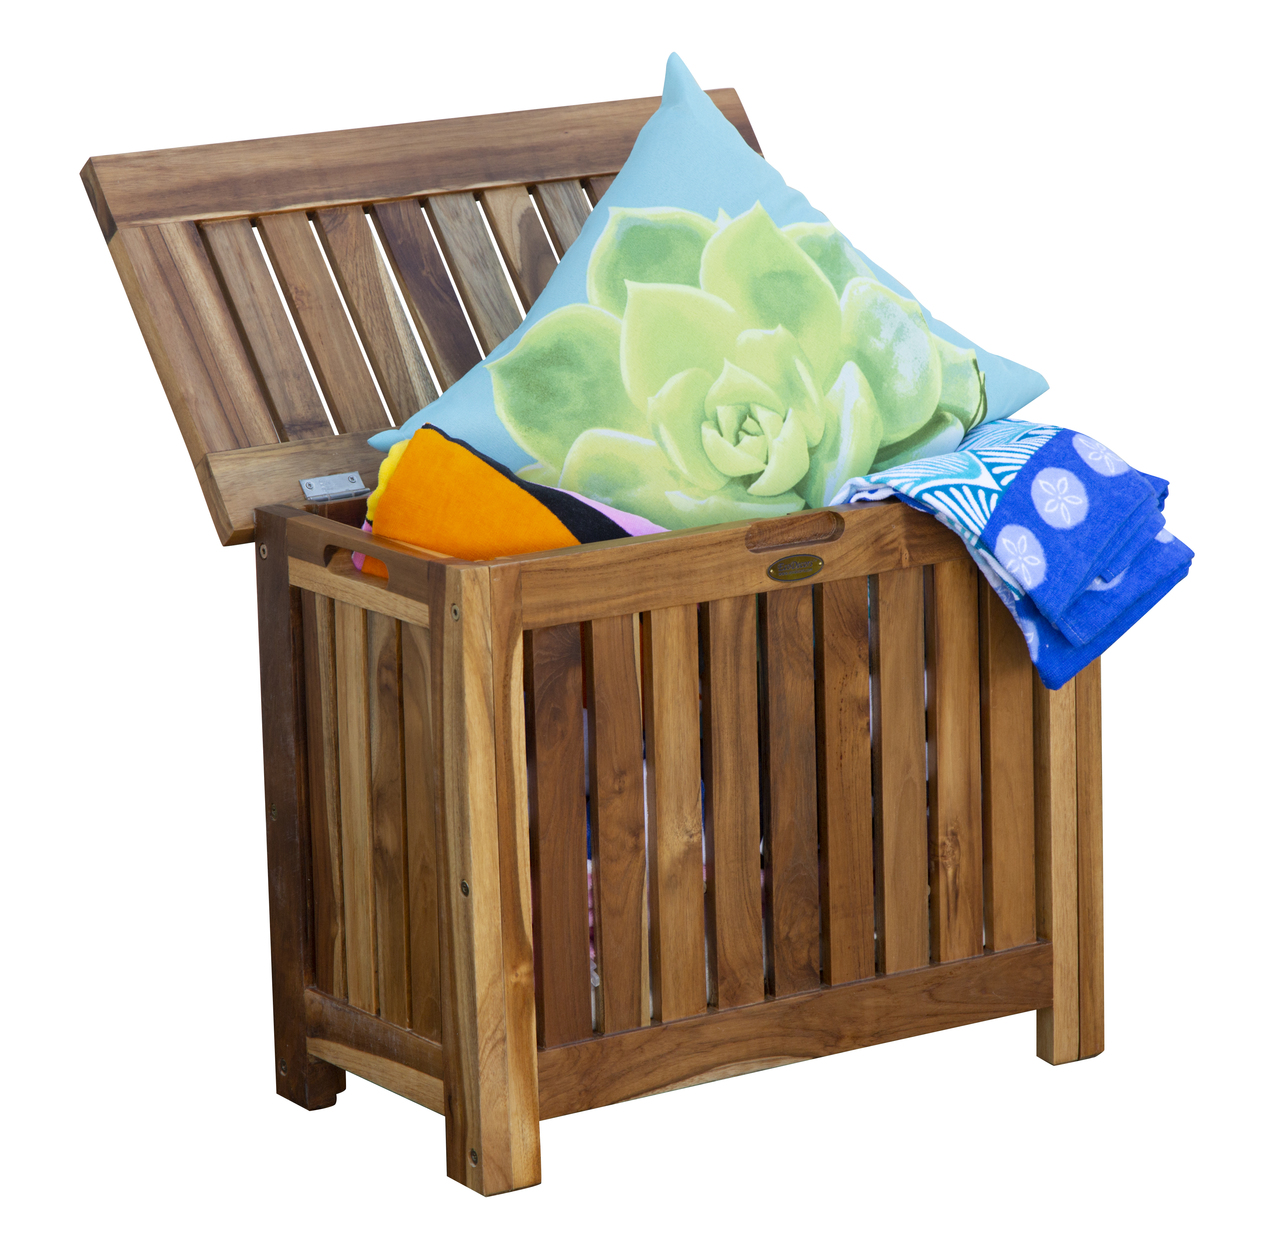 Astonishing Solid Teak Slatted Bench Hamper With Laundry Bag Creativecarmelina Interior Chair Design Creativecarmelinacom